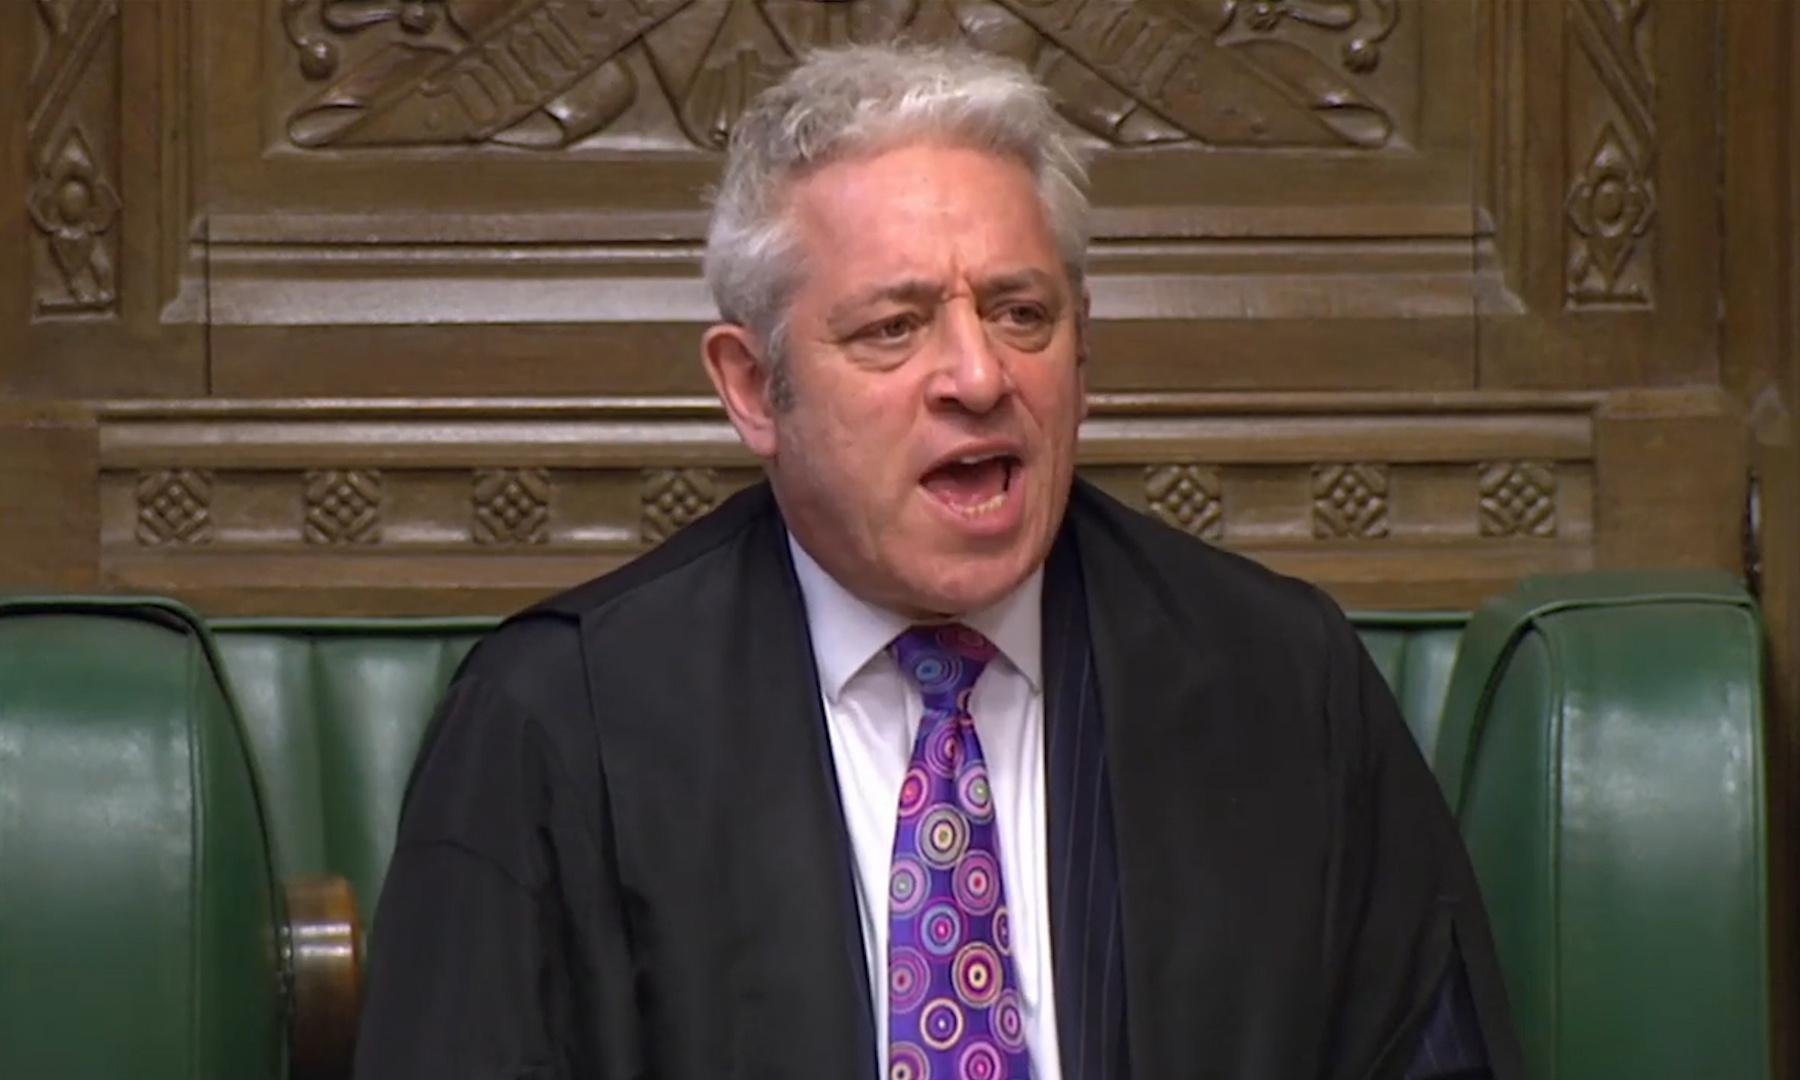 Tory MP launches attempt to oust John Bercow as Speaker